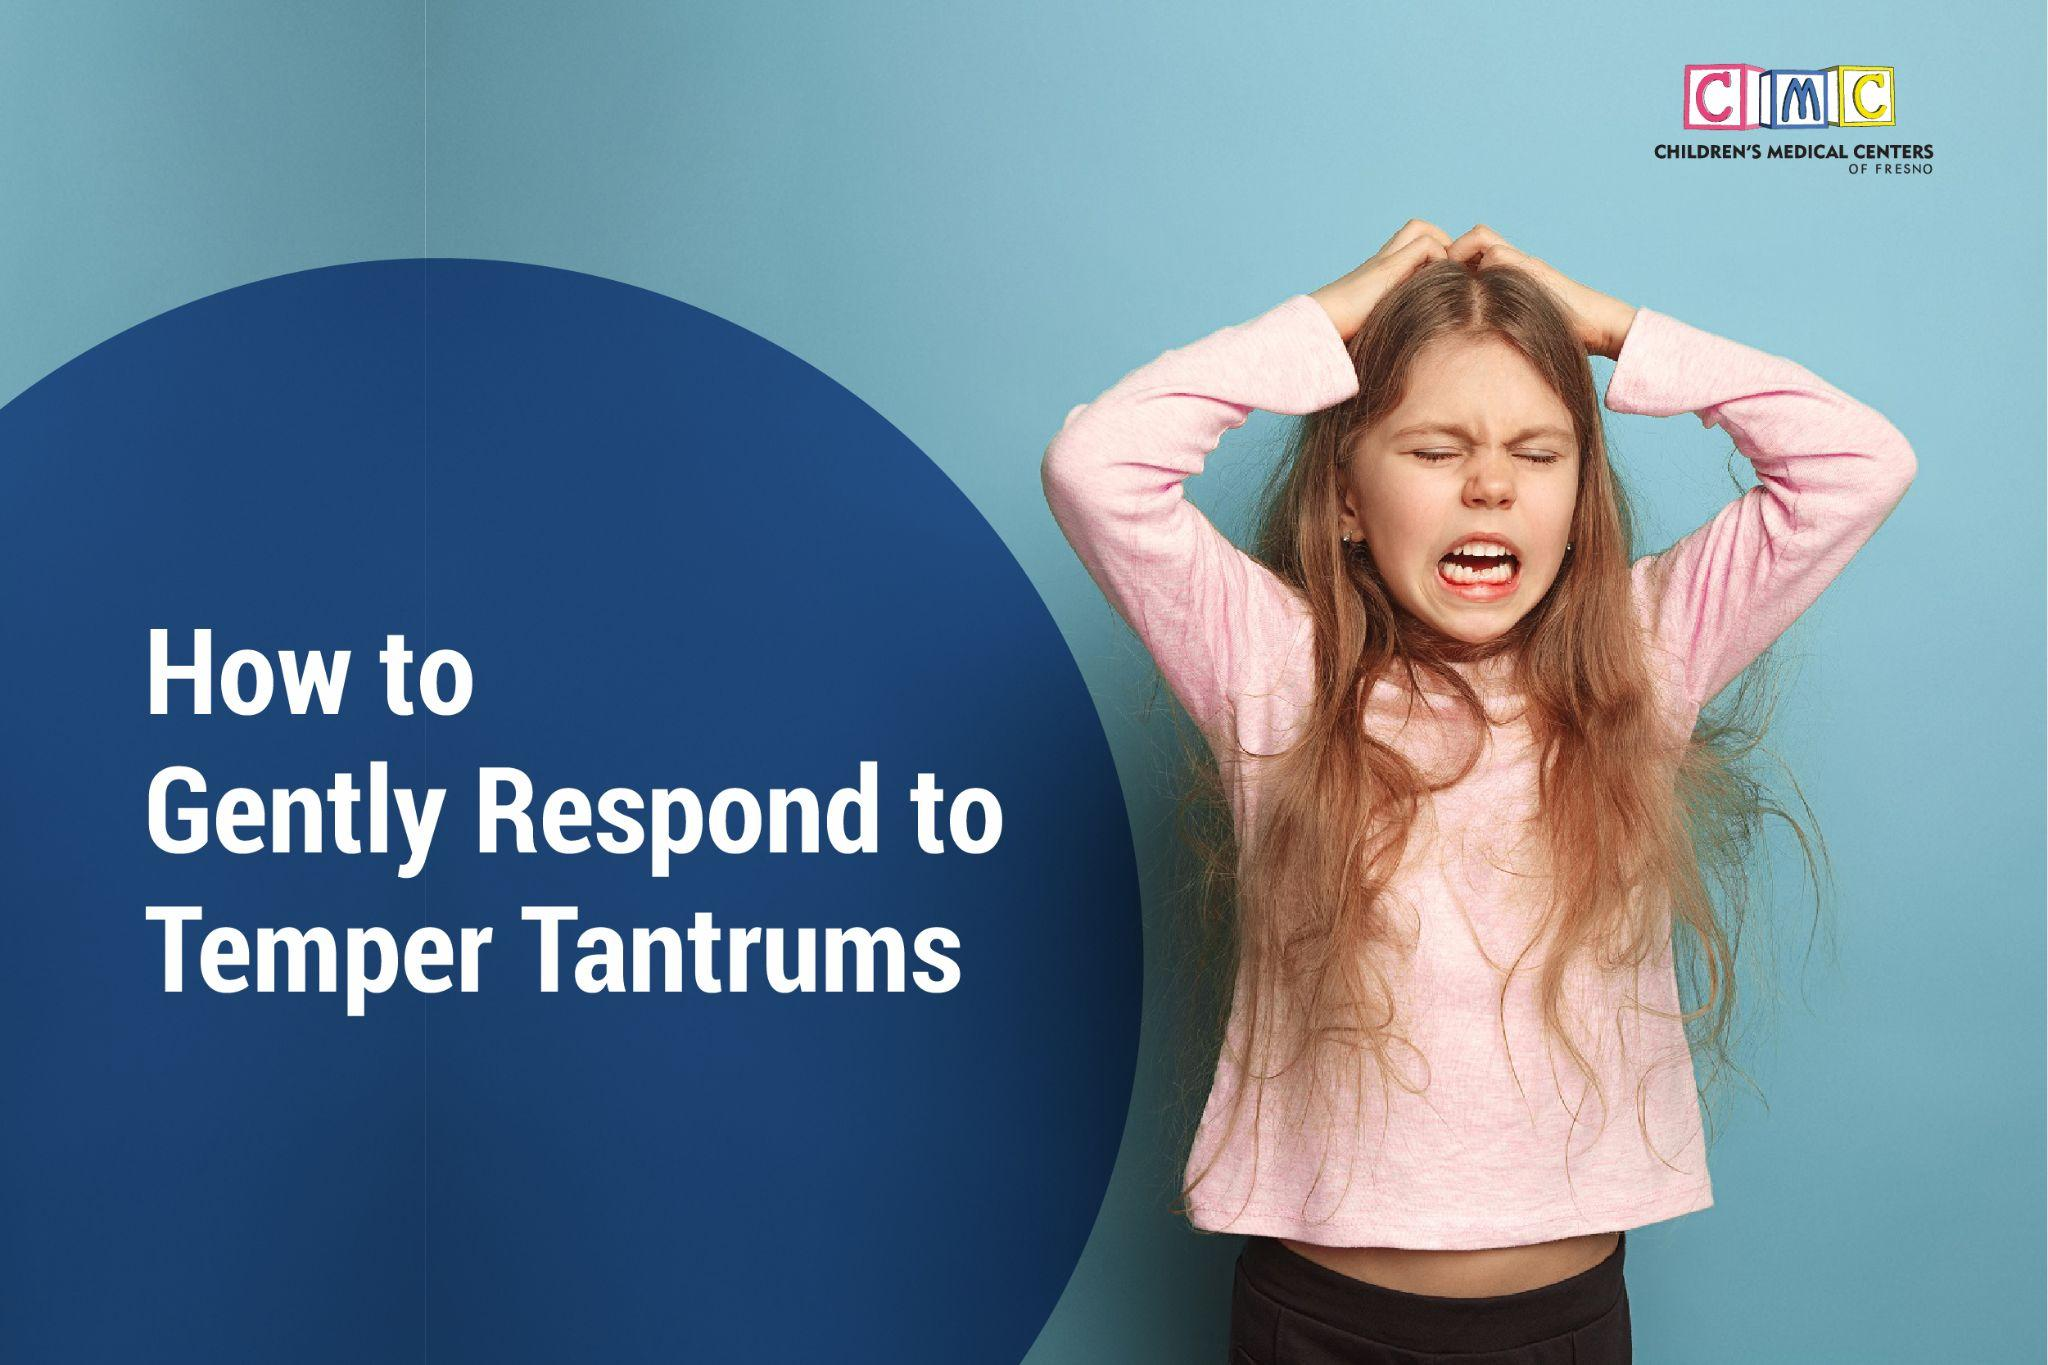 How-to-Gently-Respond-to-Temper-Tantrums